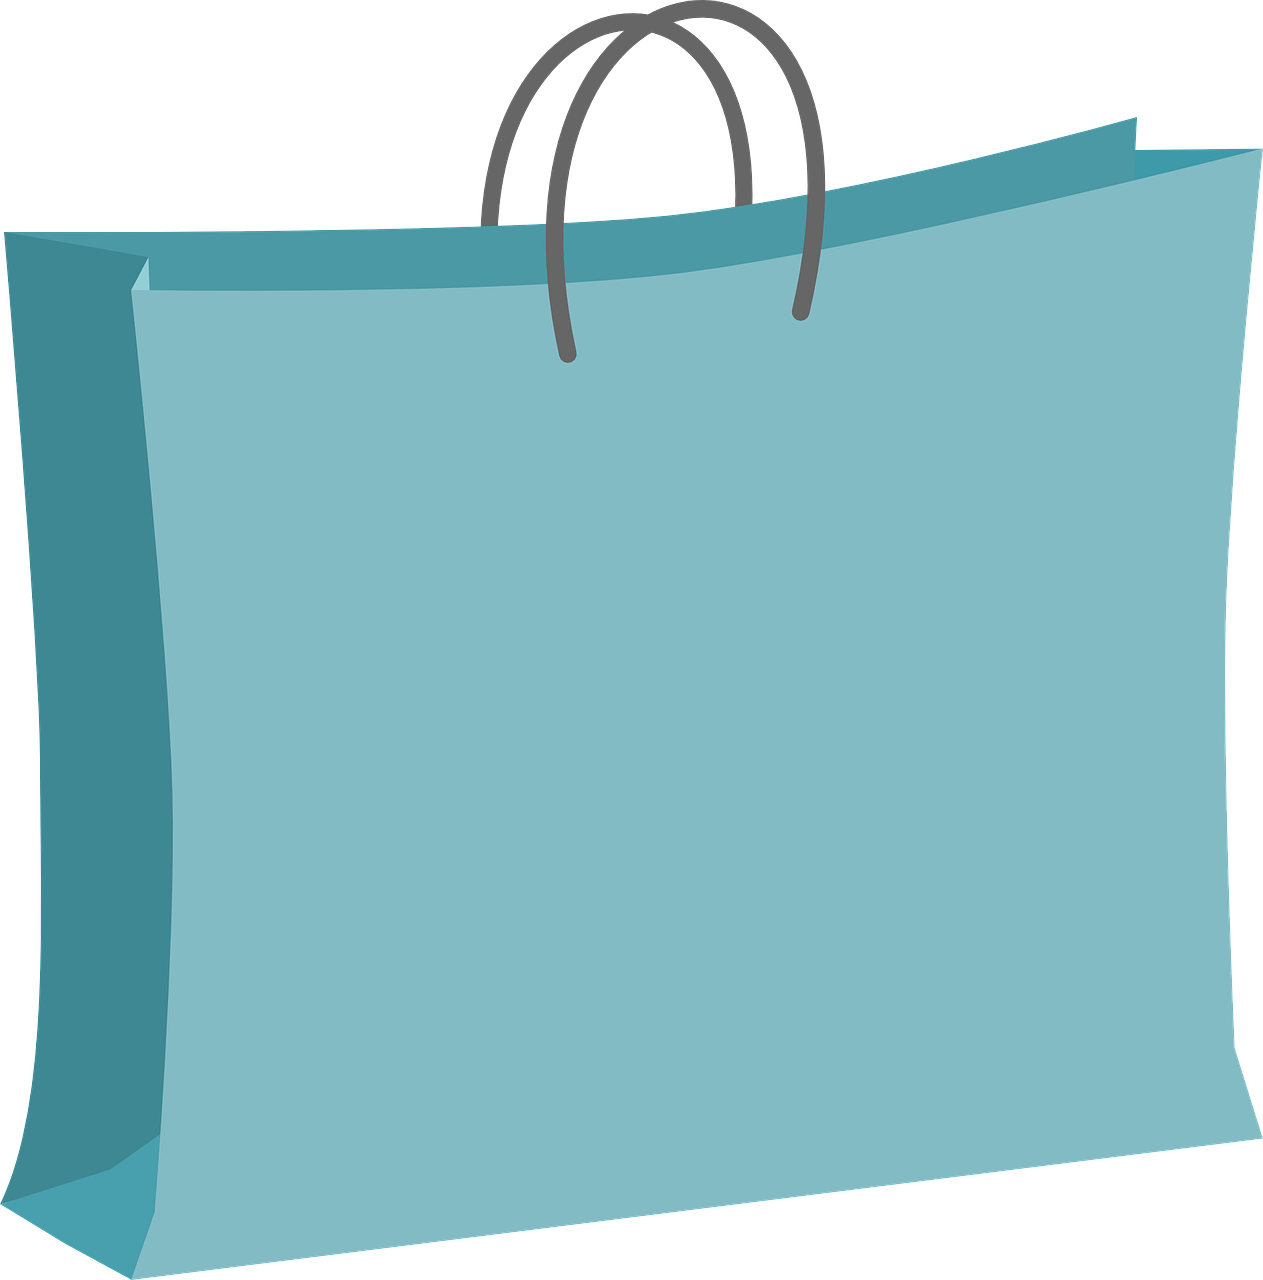 Turkey shopping bags clipart png free download 28+ Collection of Shopping Bag Clipart Transparent | High quality ... png free download